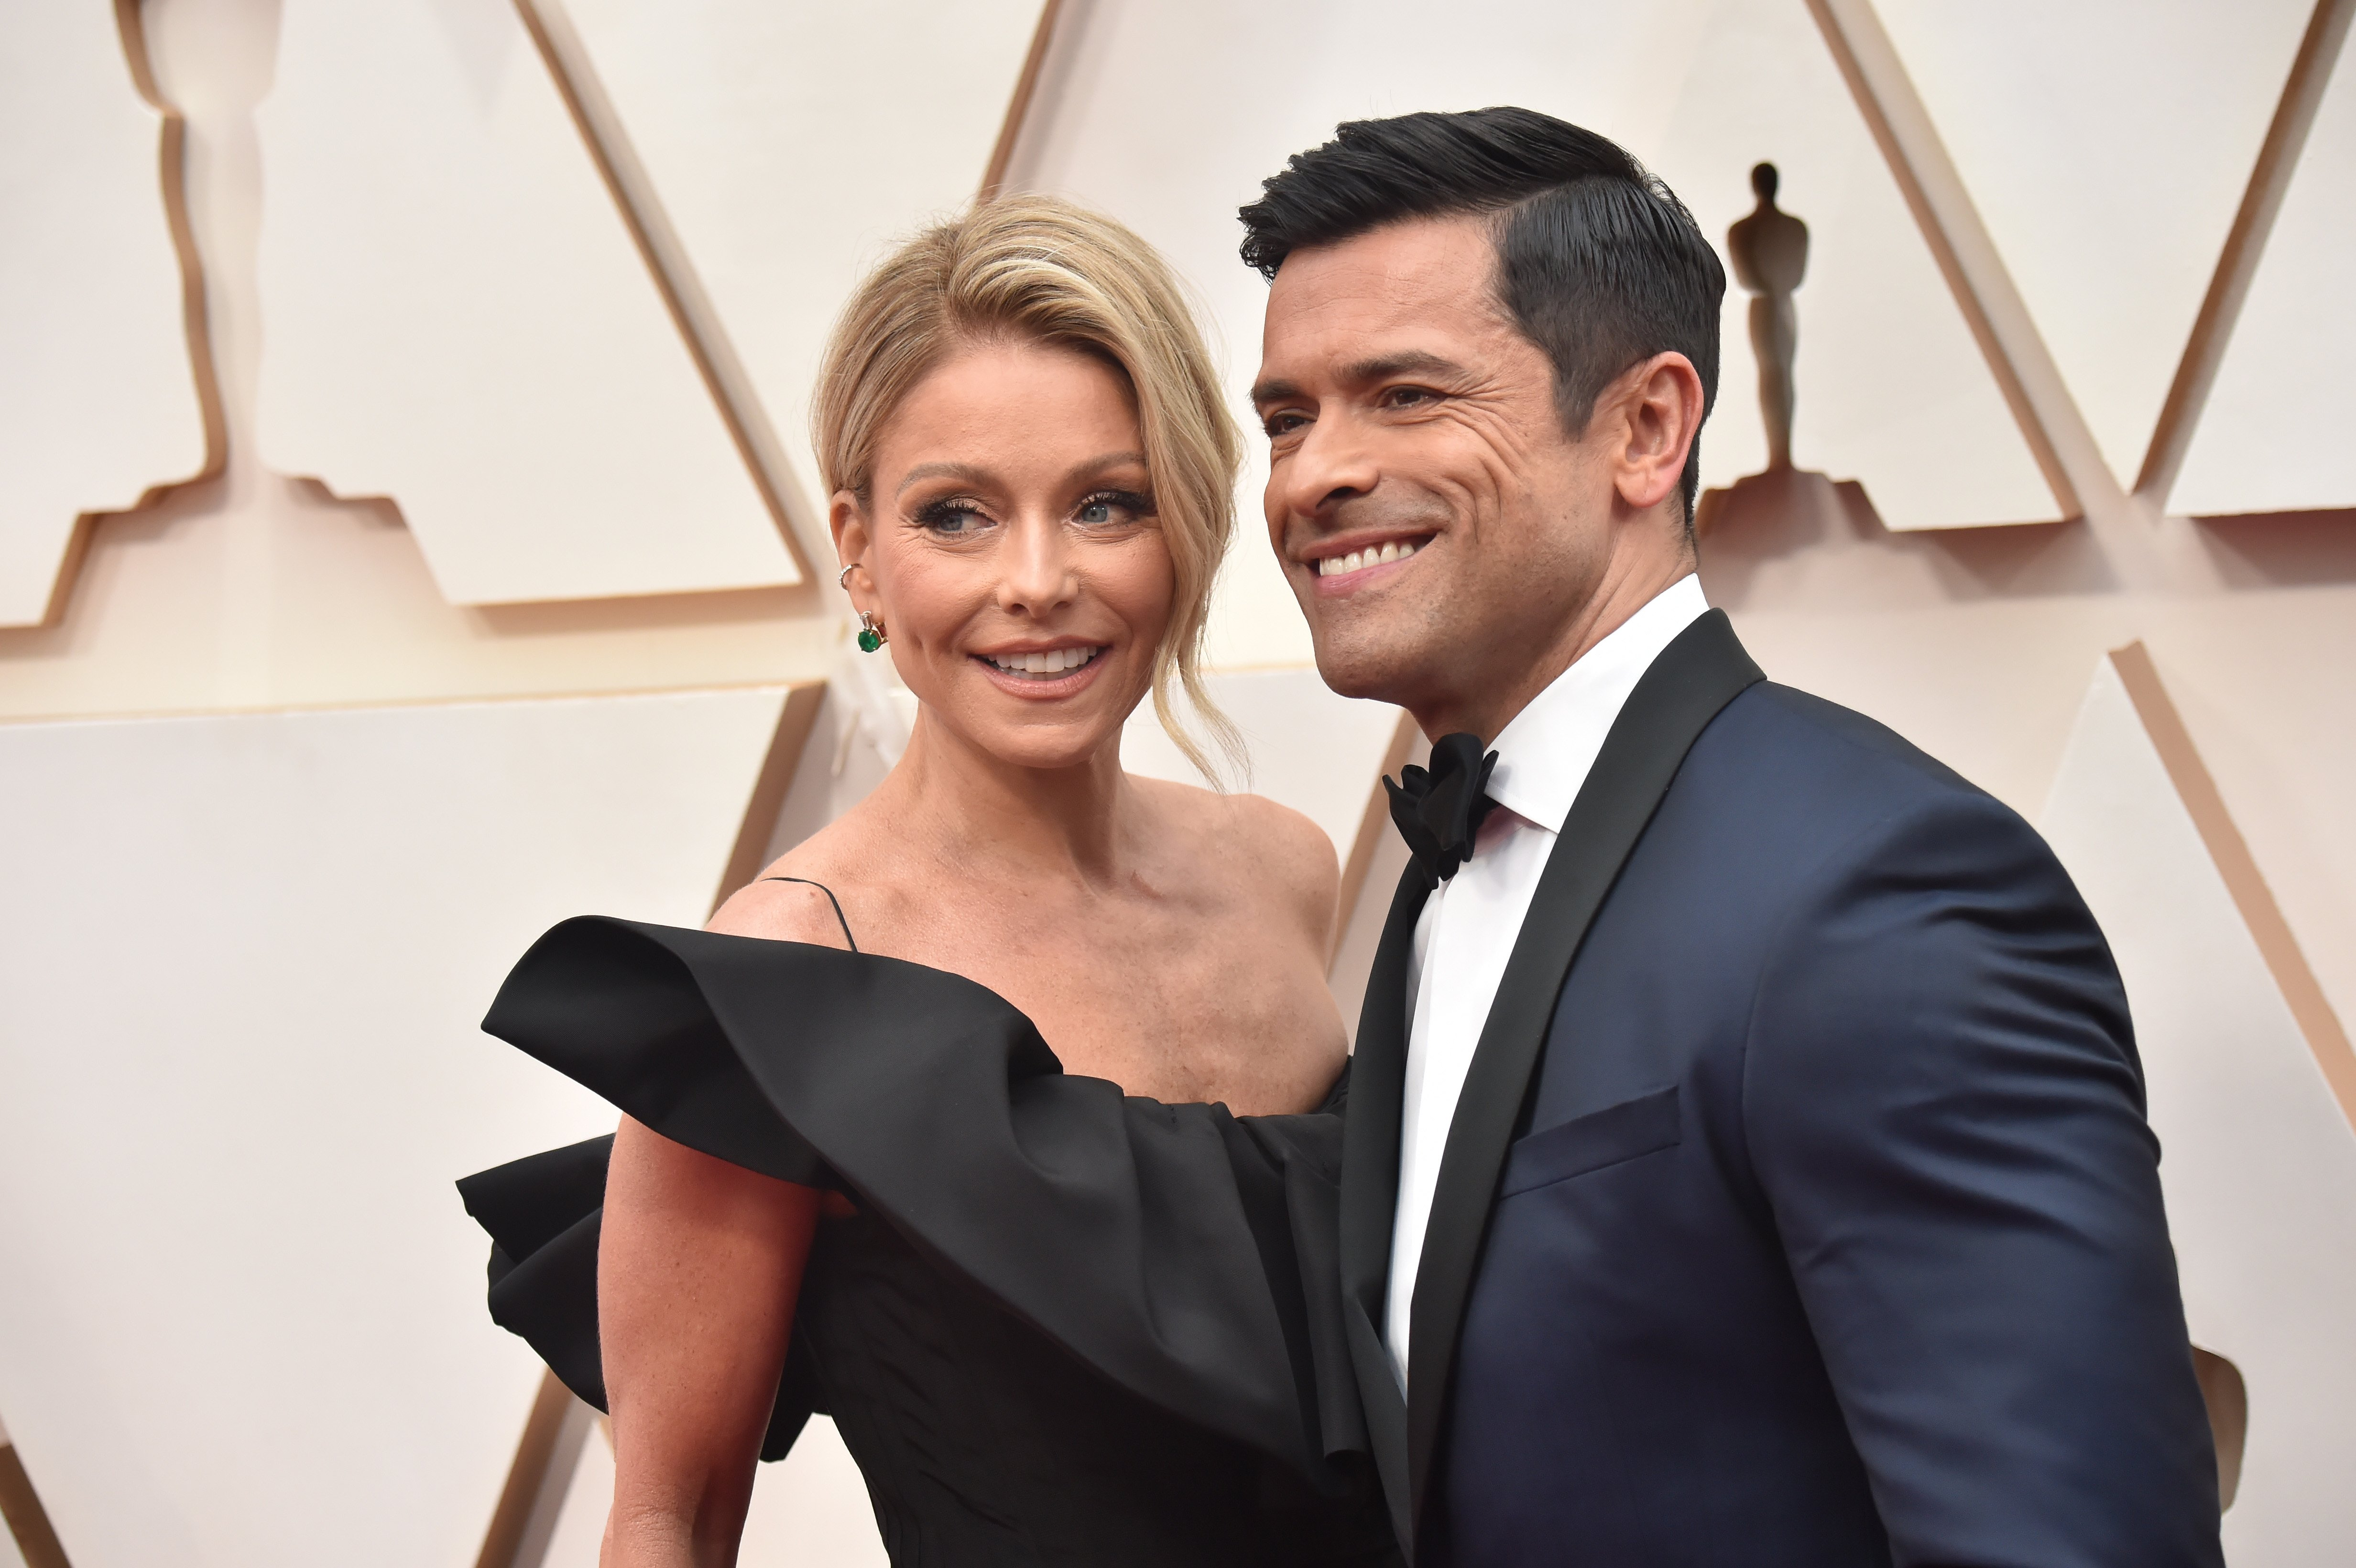 Kelly Ripa and Mark Consuelos attend the 92nd Annual Academy Awards at Hollywood and Highland on February 09, 2020 in Hollywood, California. | Source: Getty Images